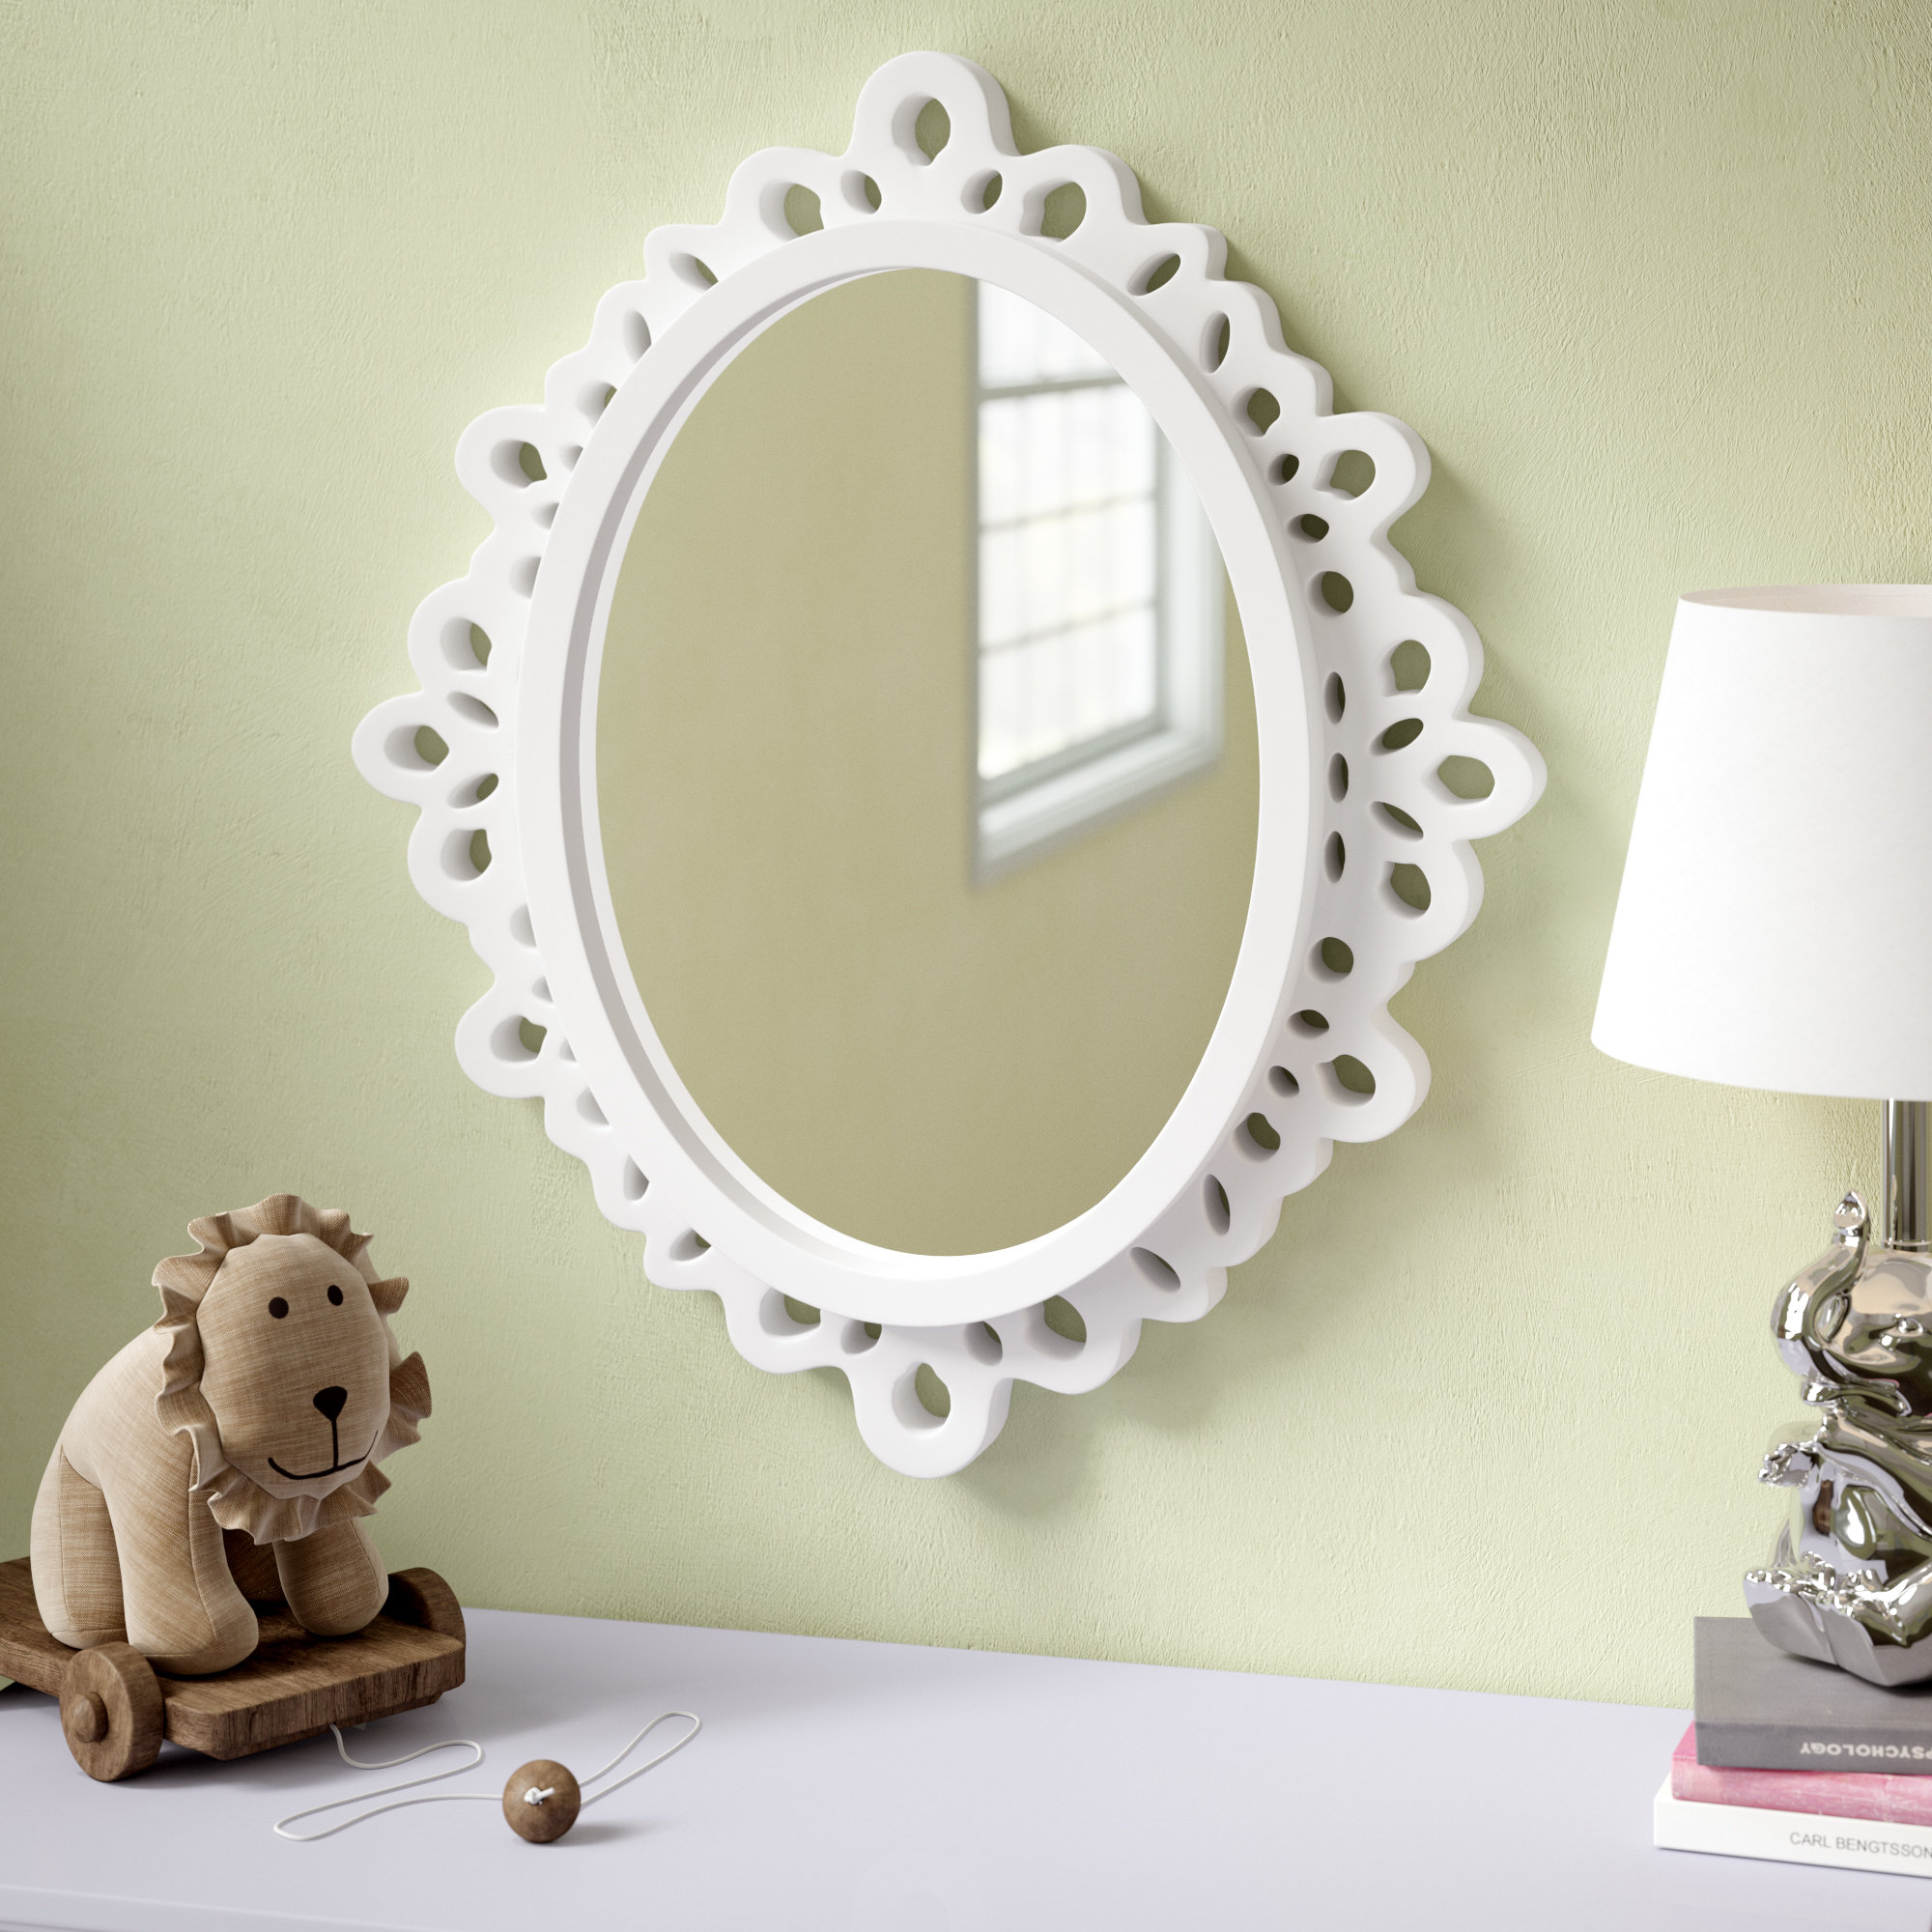 Oval Wood Lace Wall Mirror Intended For Oval Wood Wall Mirrors (View 18 of 30)